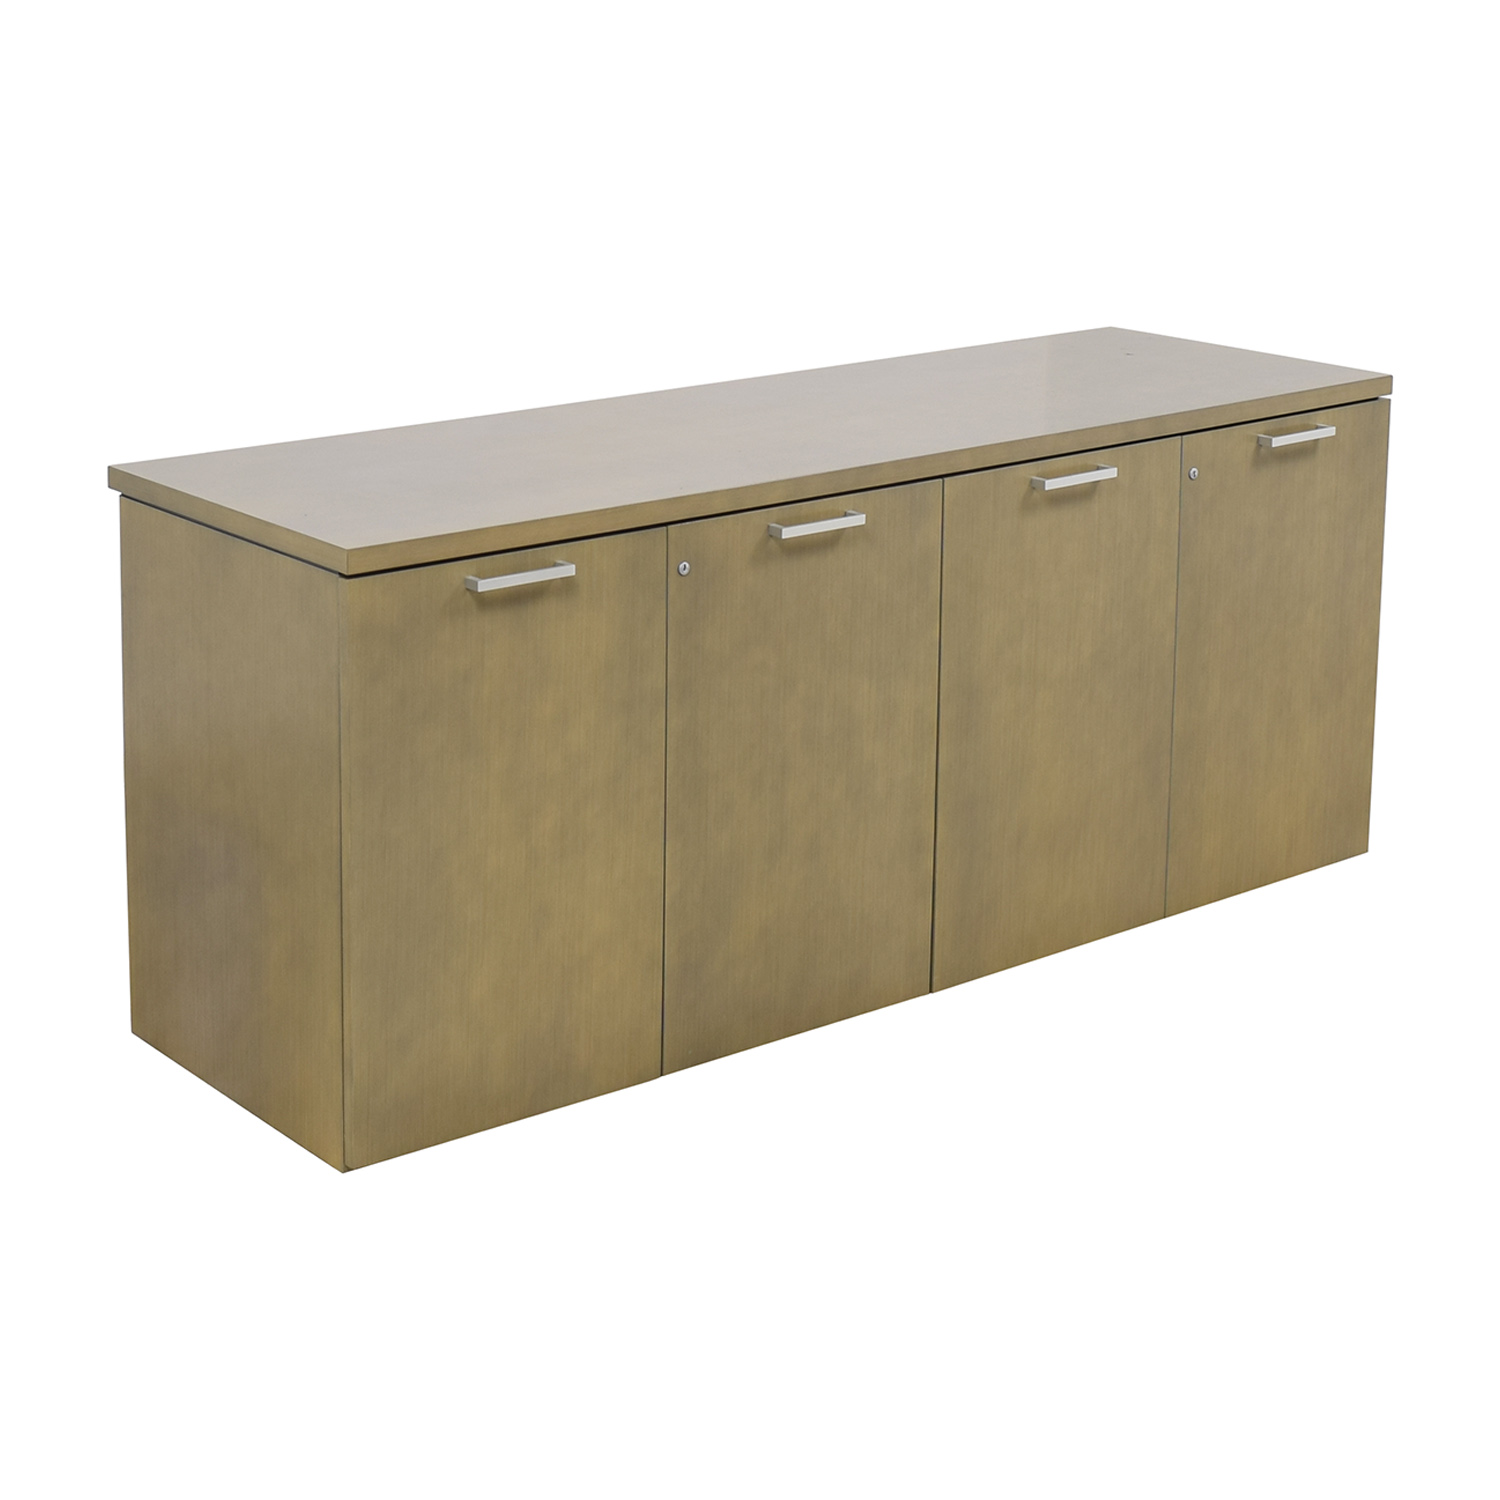 Office Furniture Heaven Office Furniture Heaven Storage Credenza nyc